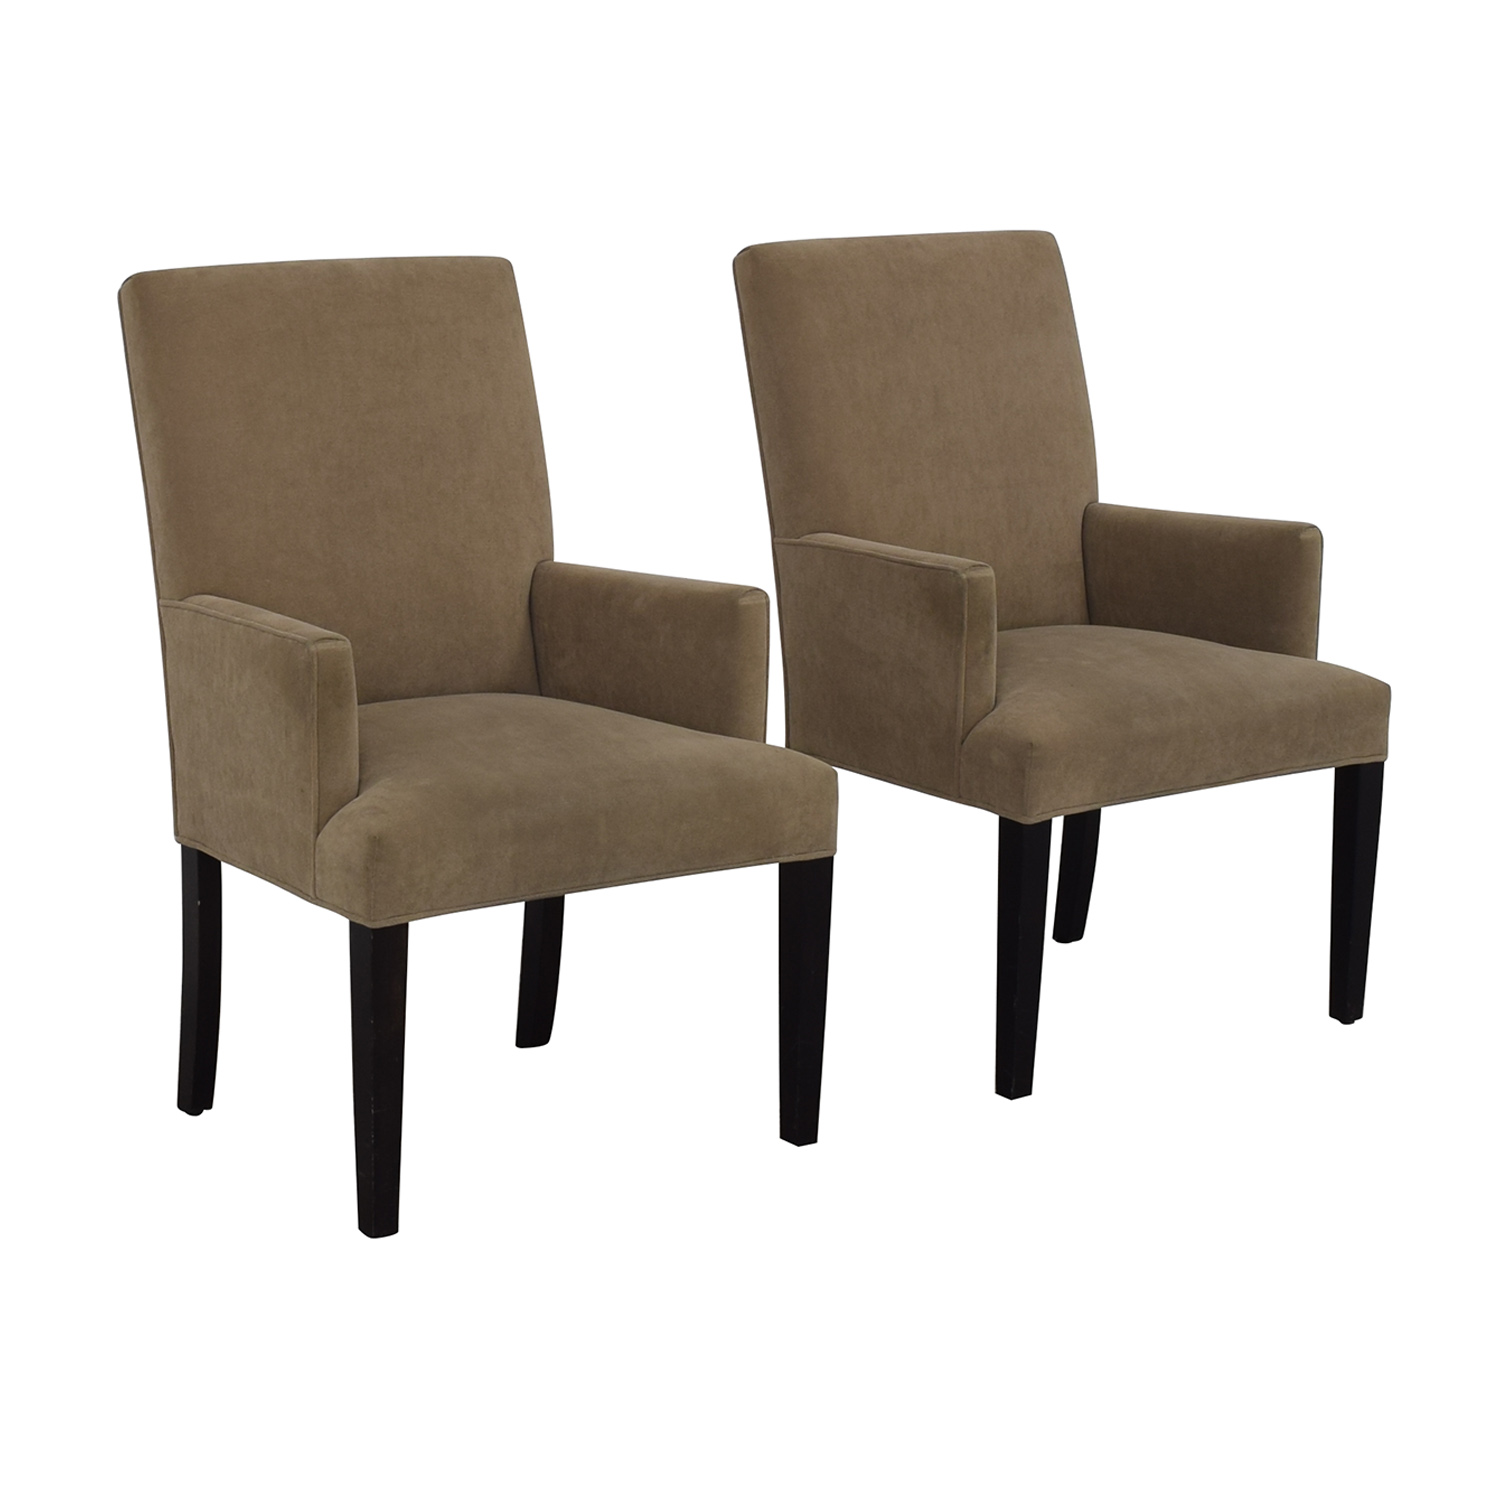 Crate & Barrel Crate & Barrel Tan Dining Chairs nyc